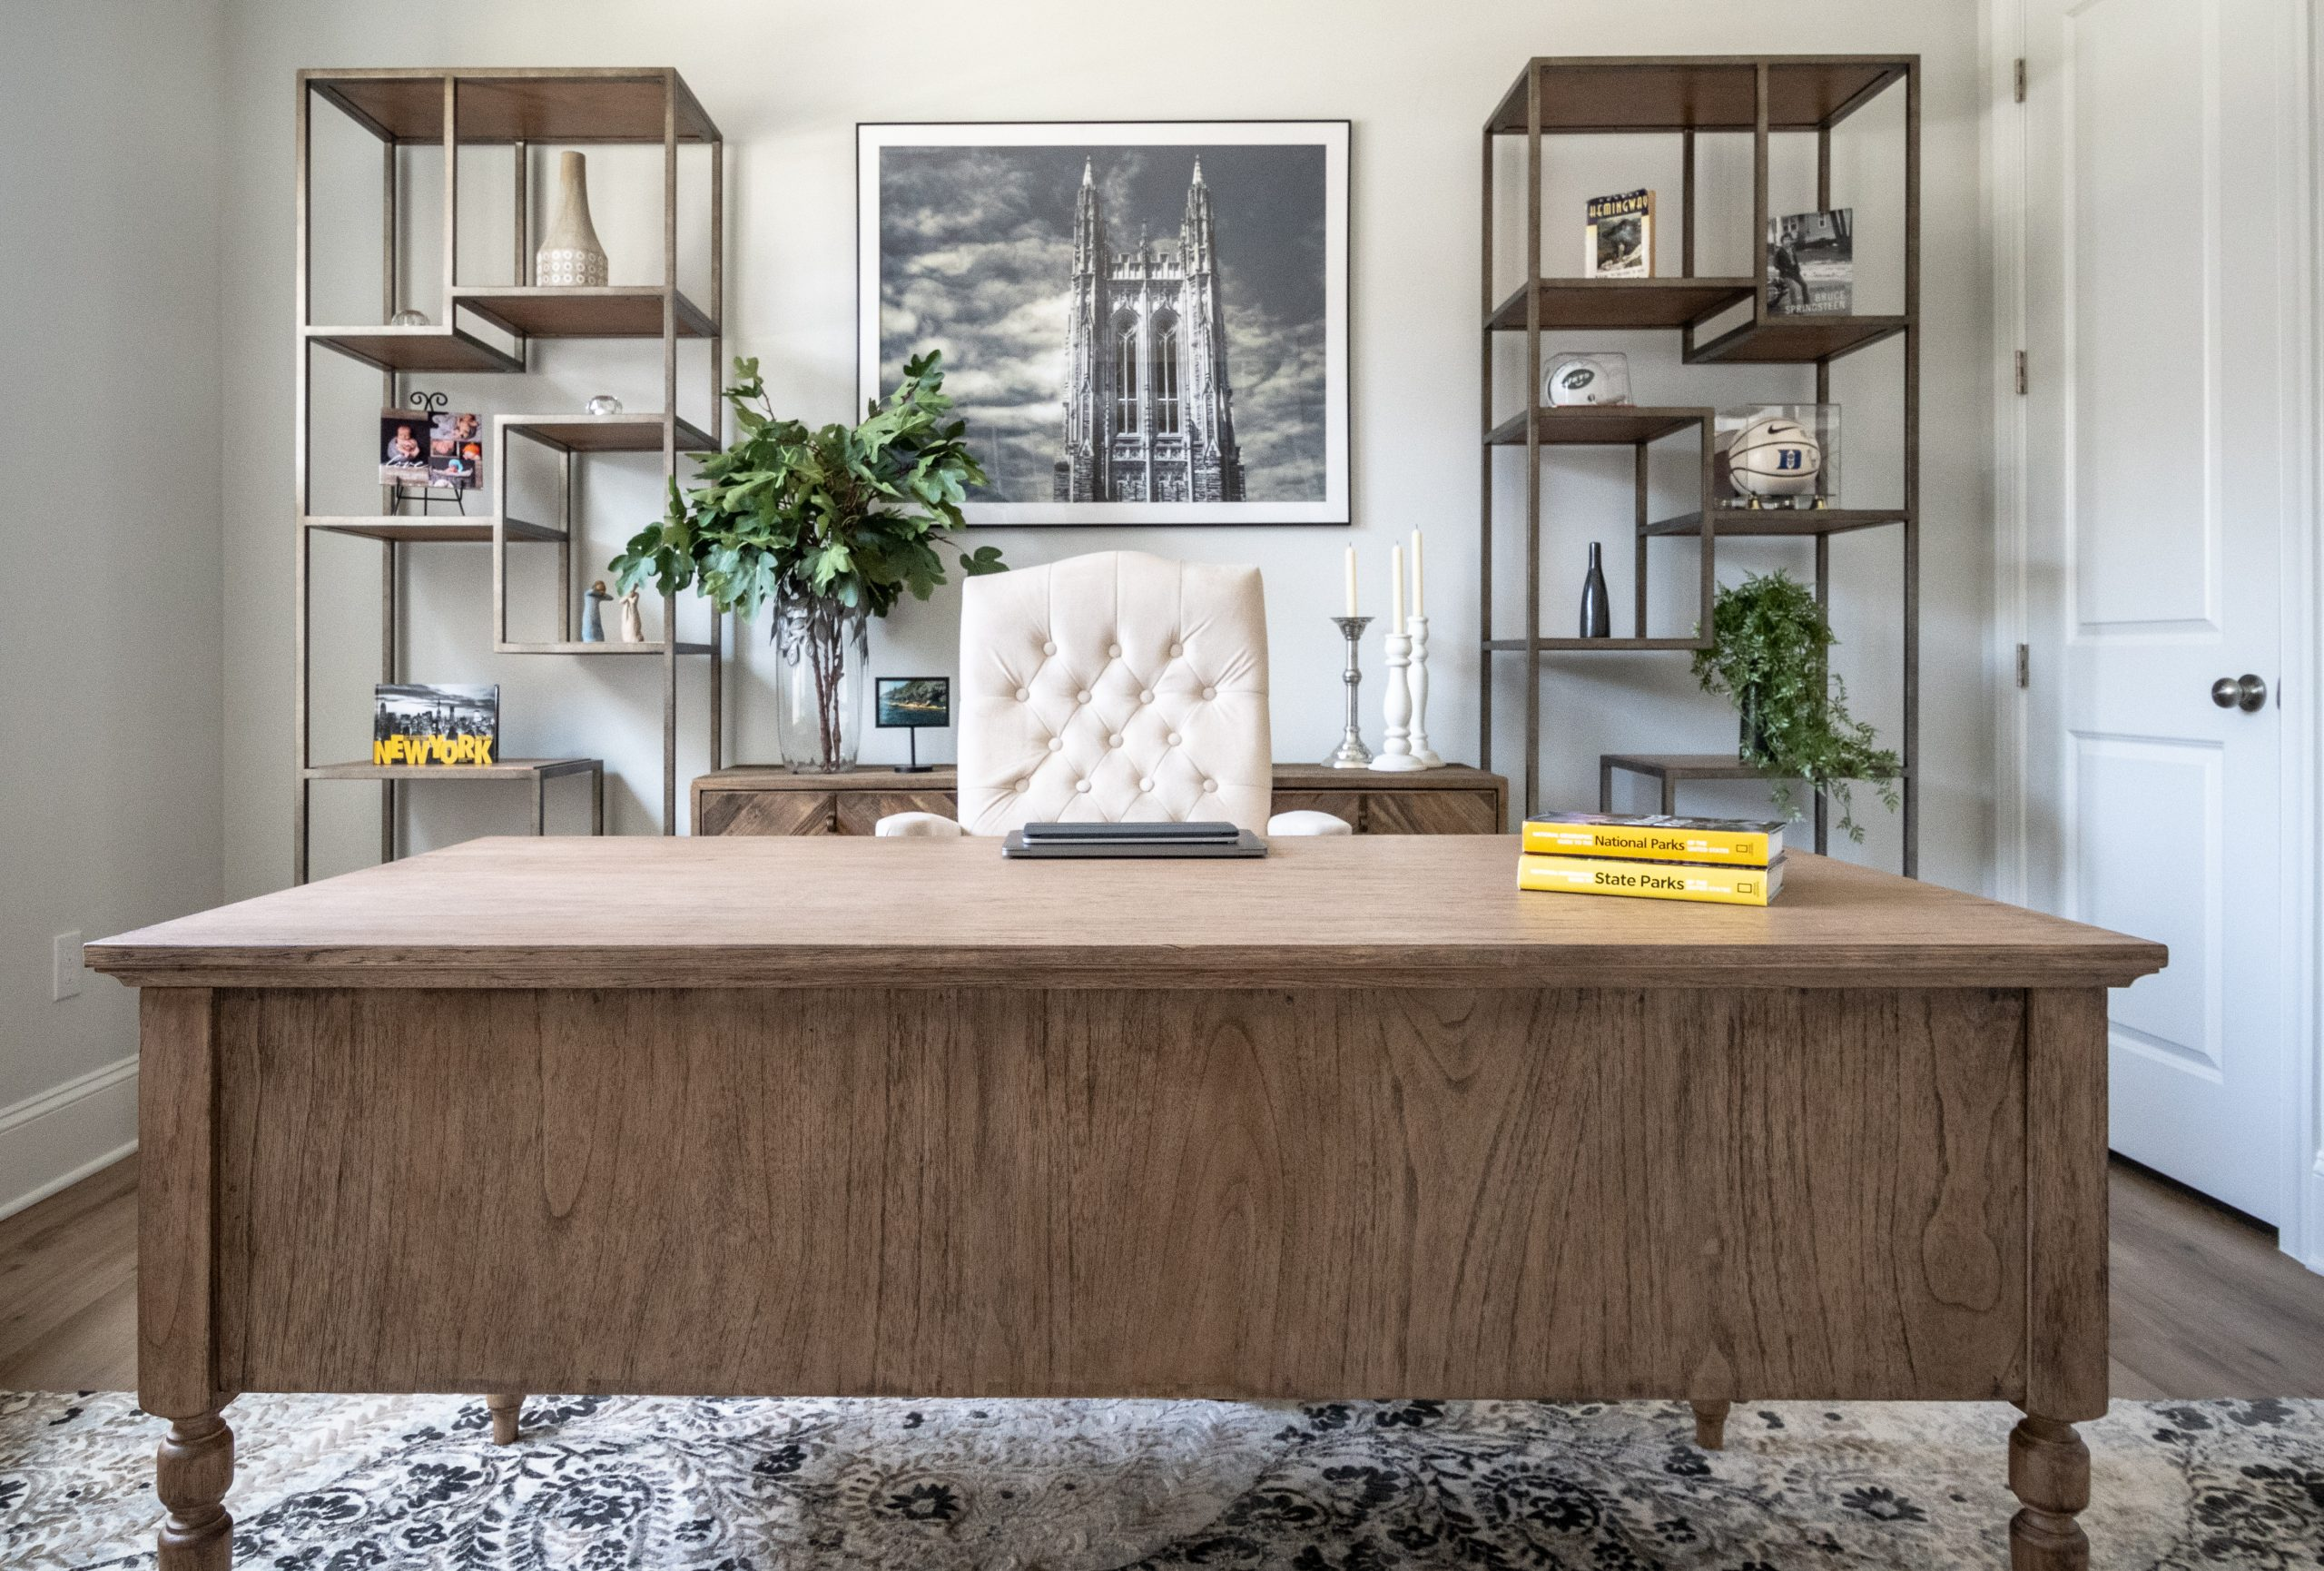 Discover your design style